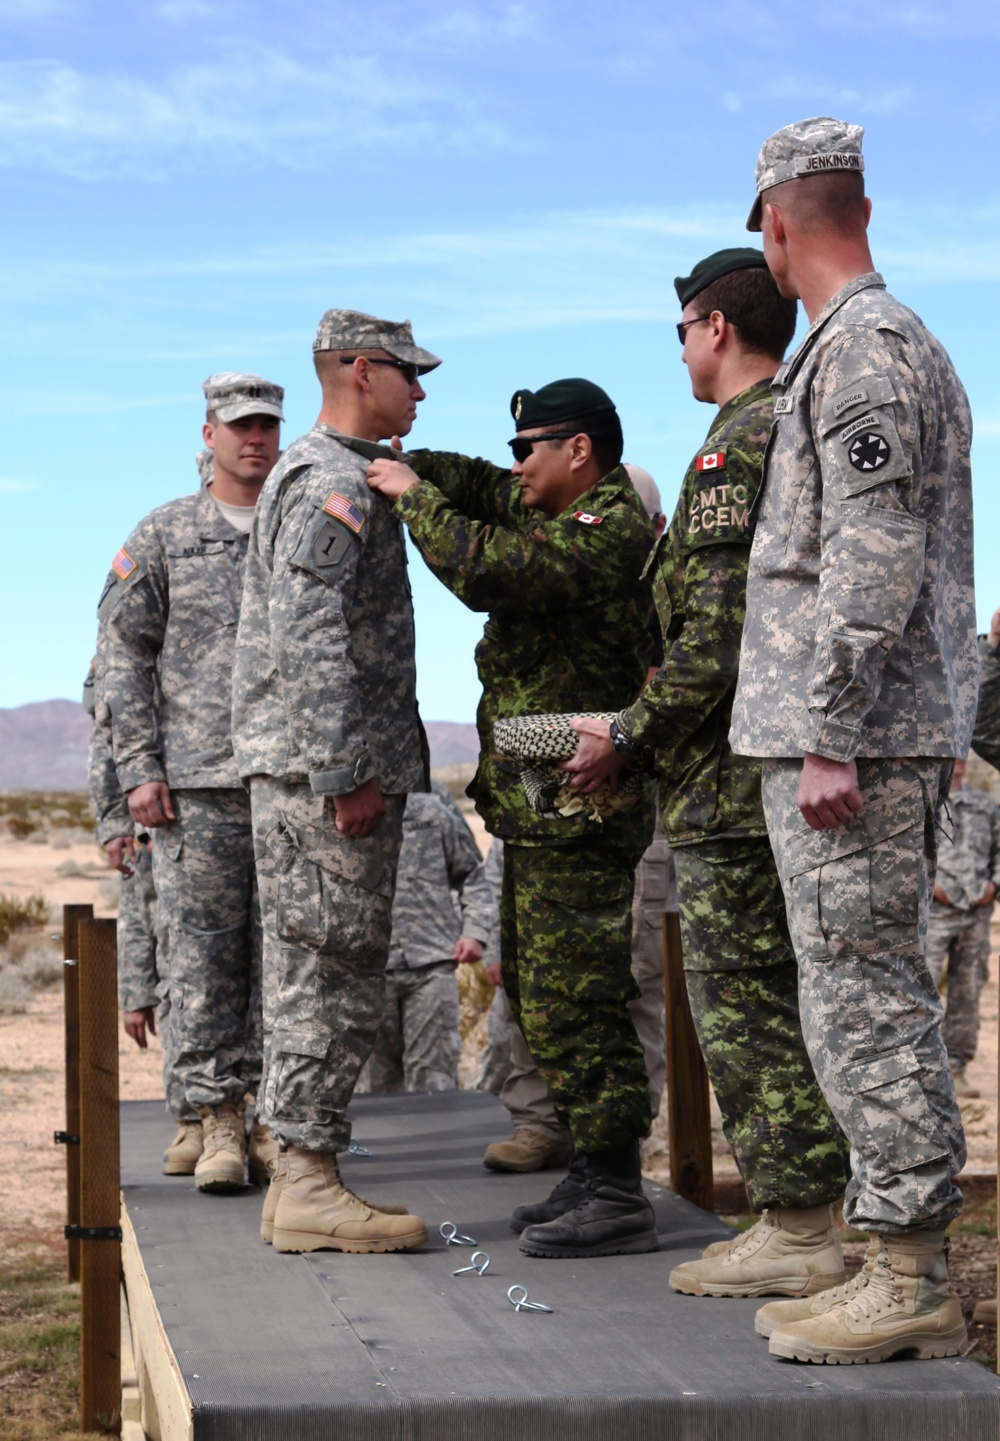 Canadian, US Paratroopers train together, exchange jump wings